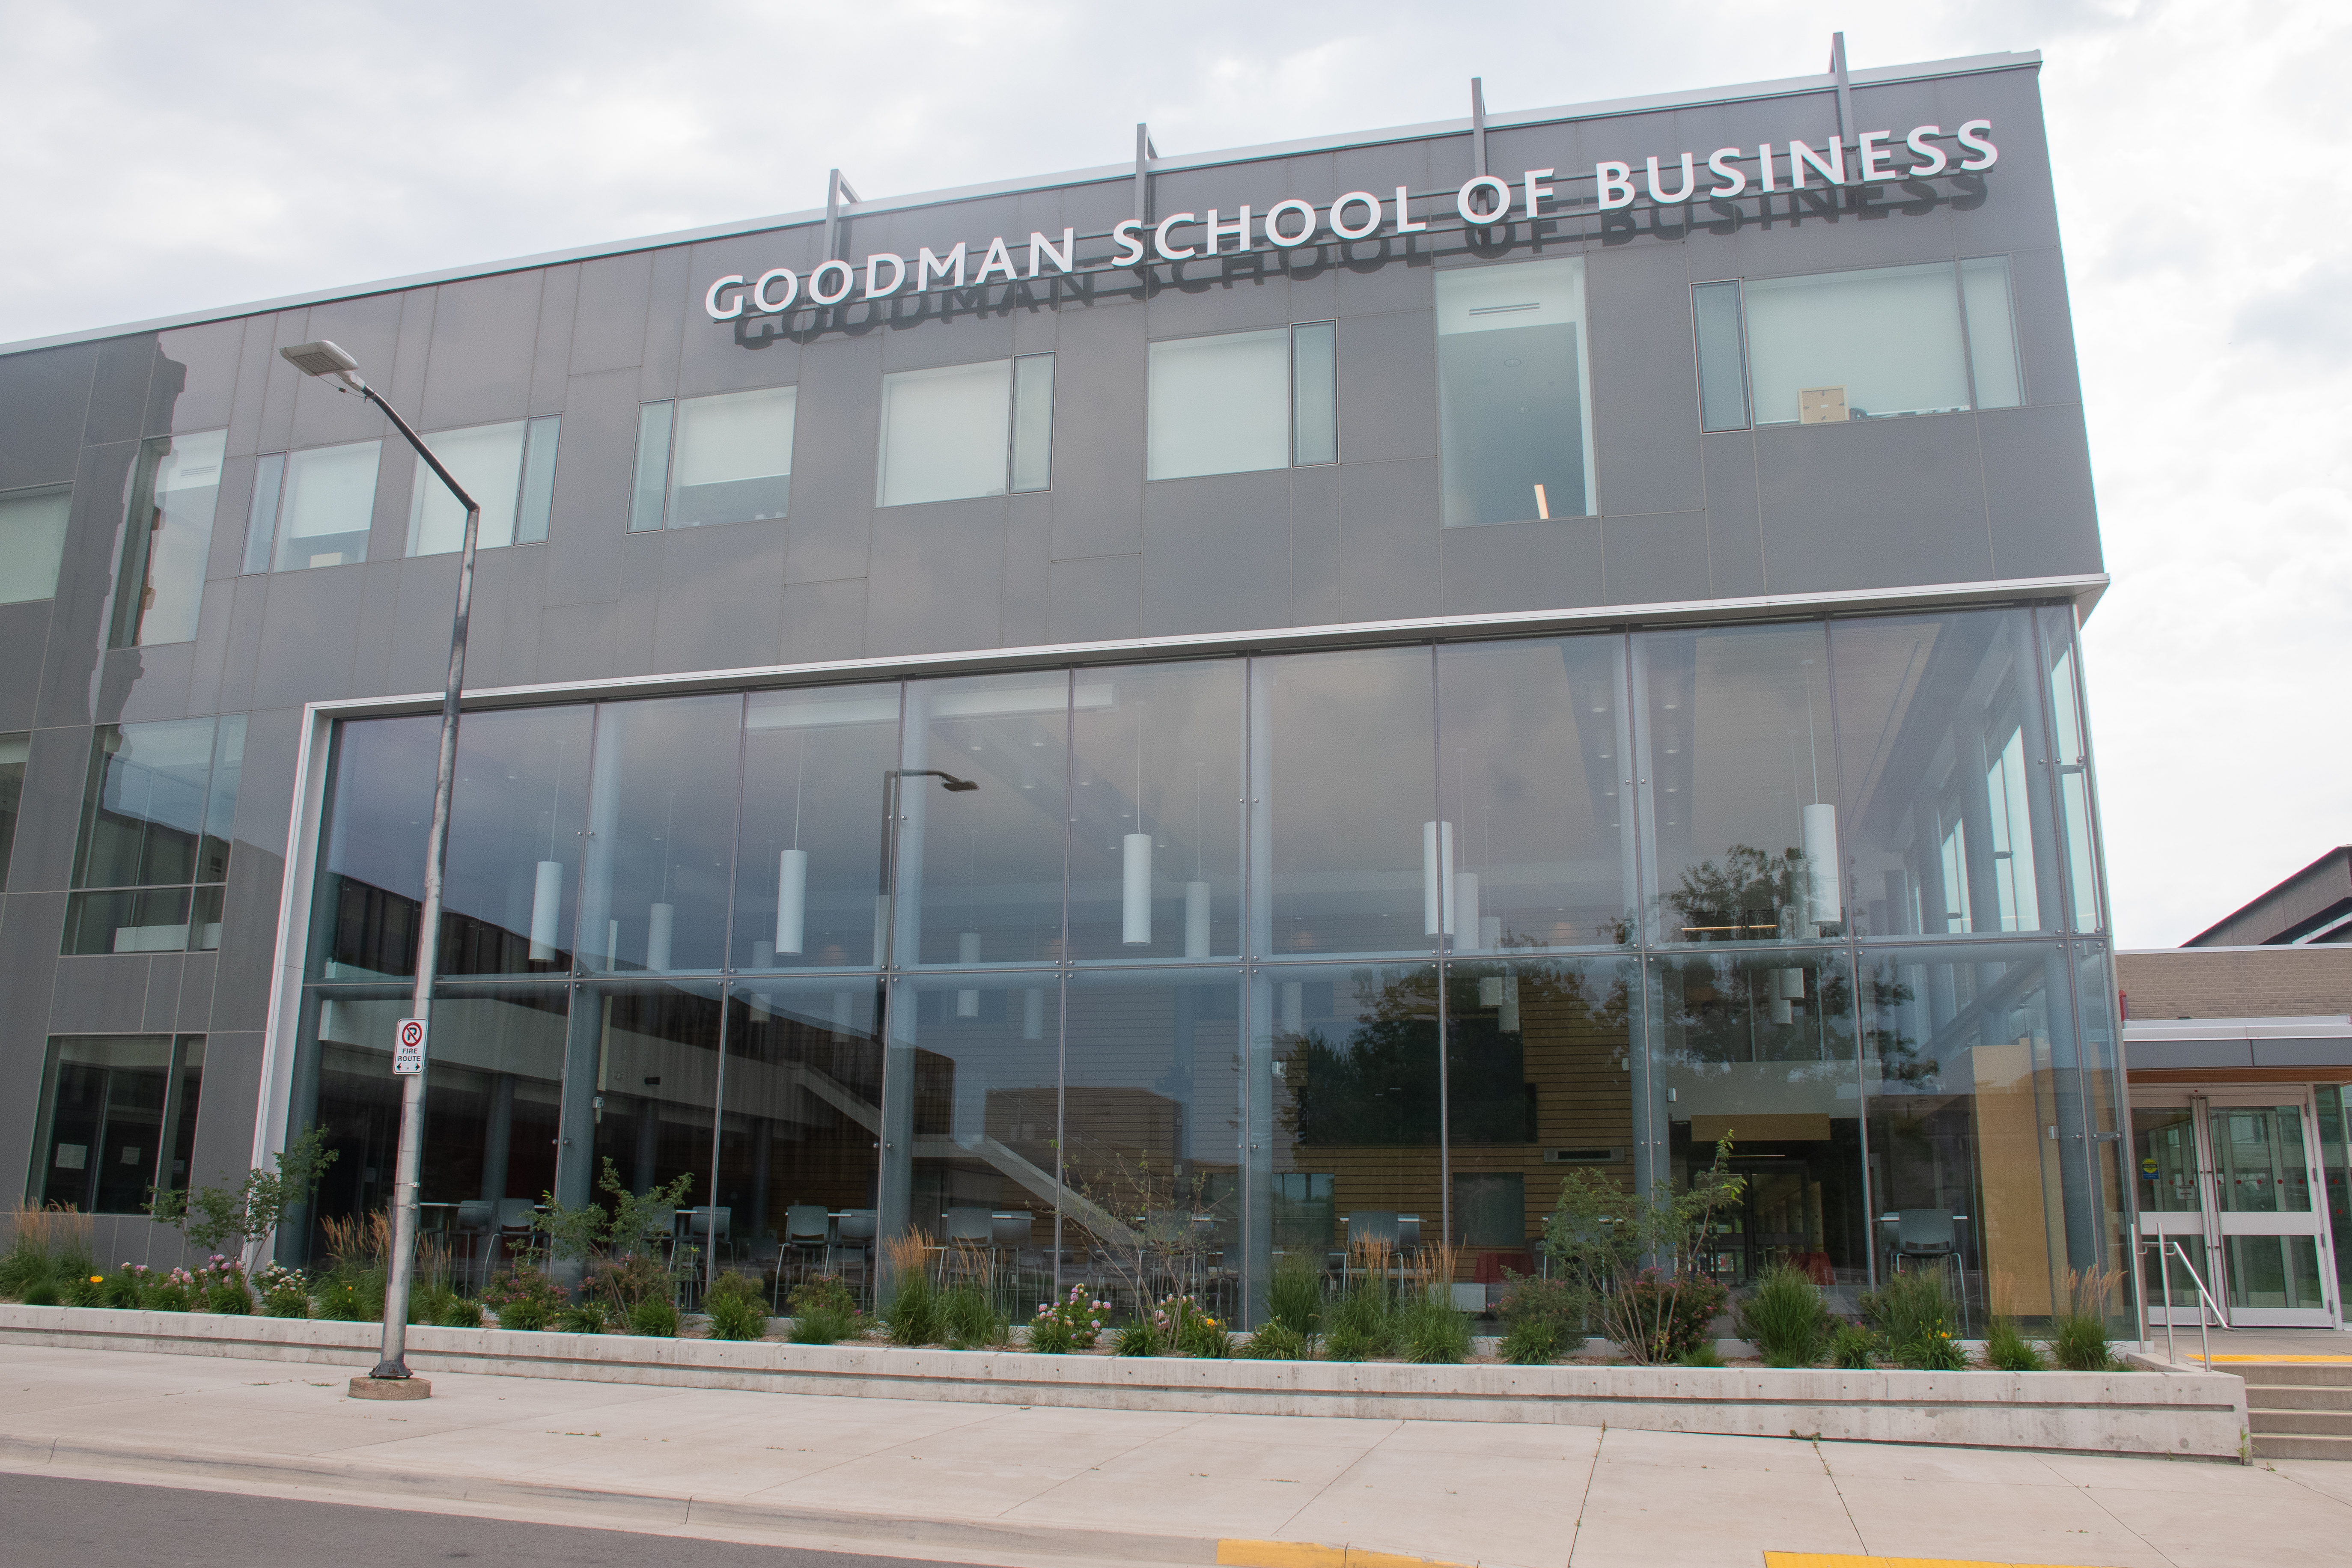 A guide to the clubs at the Goodman School of Business